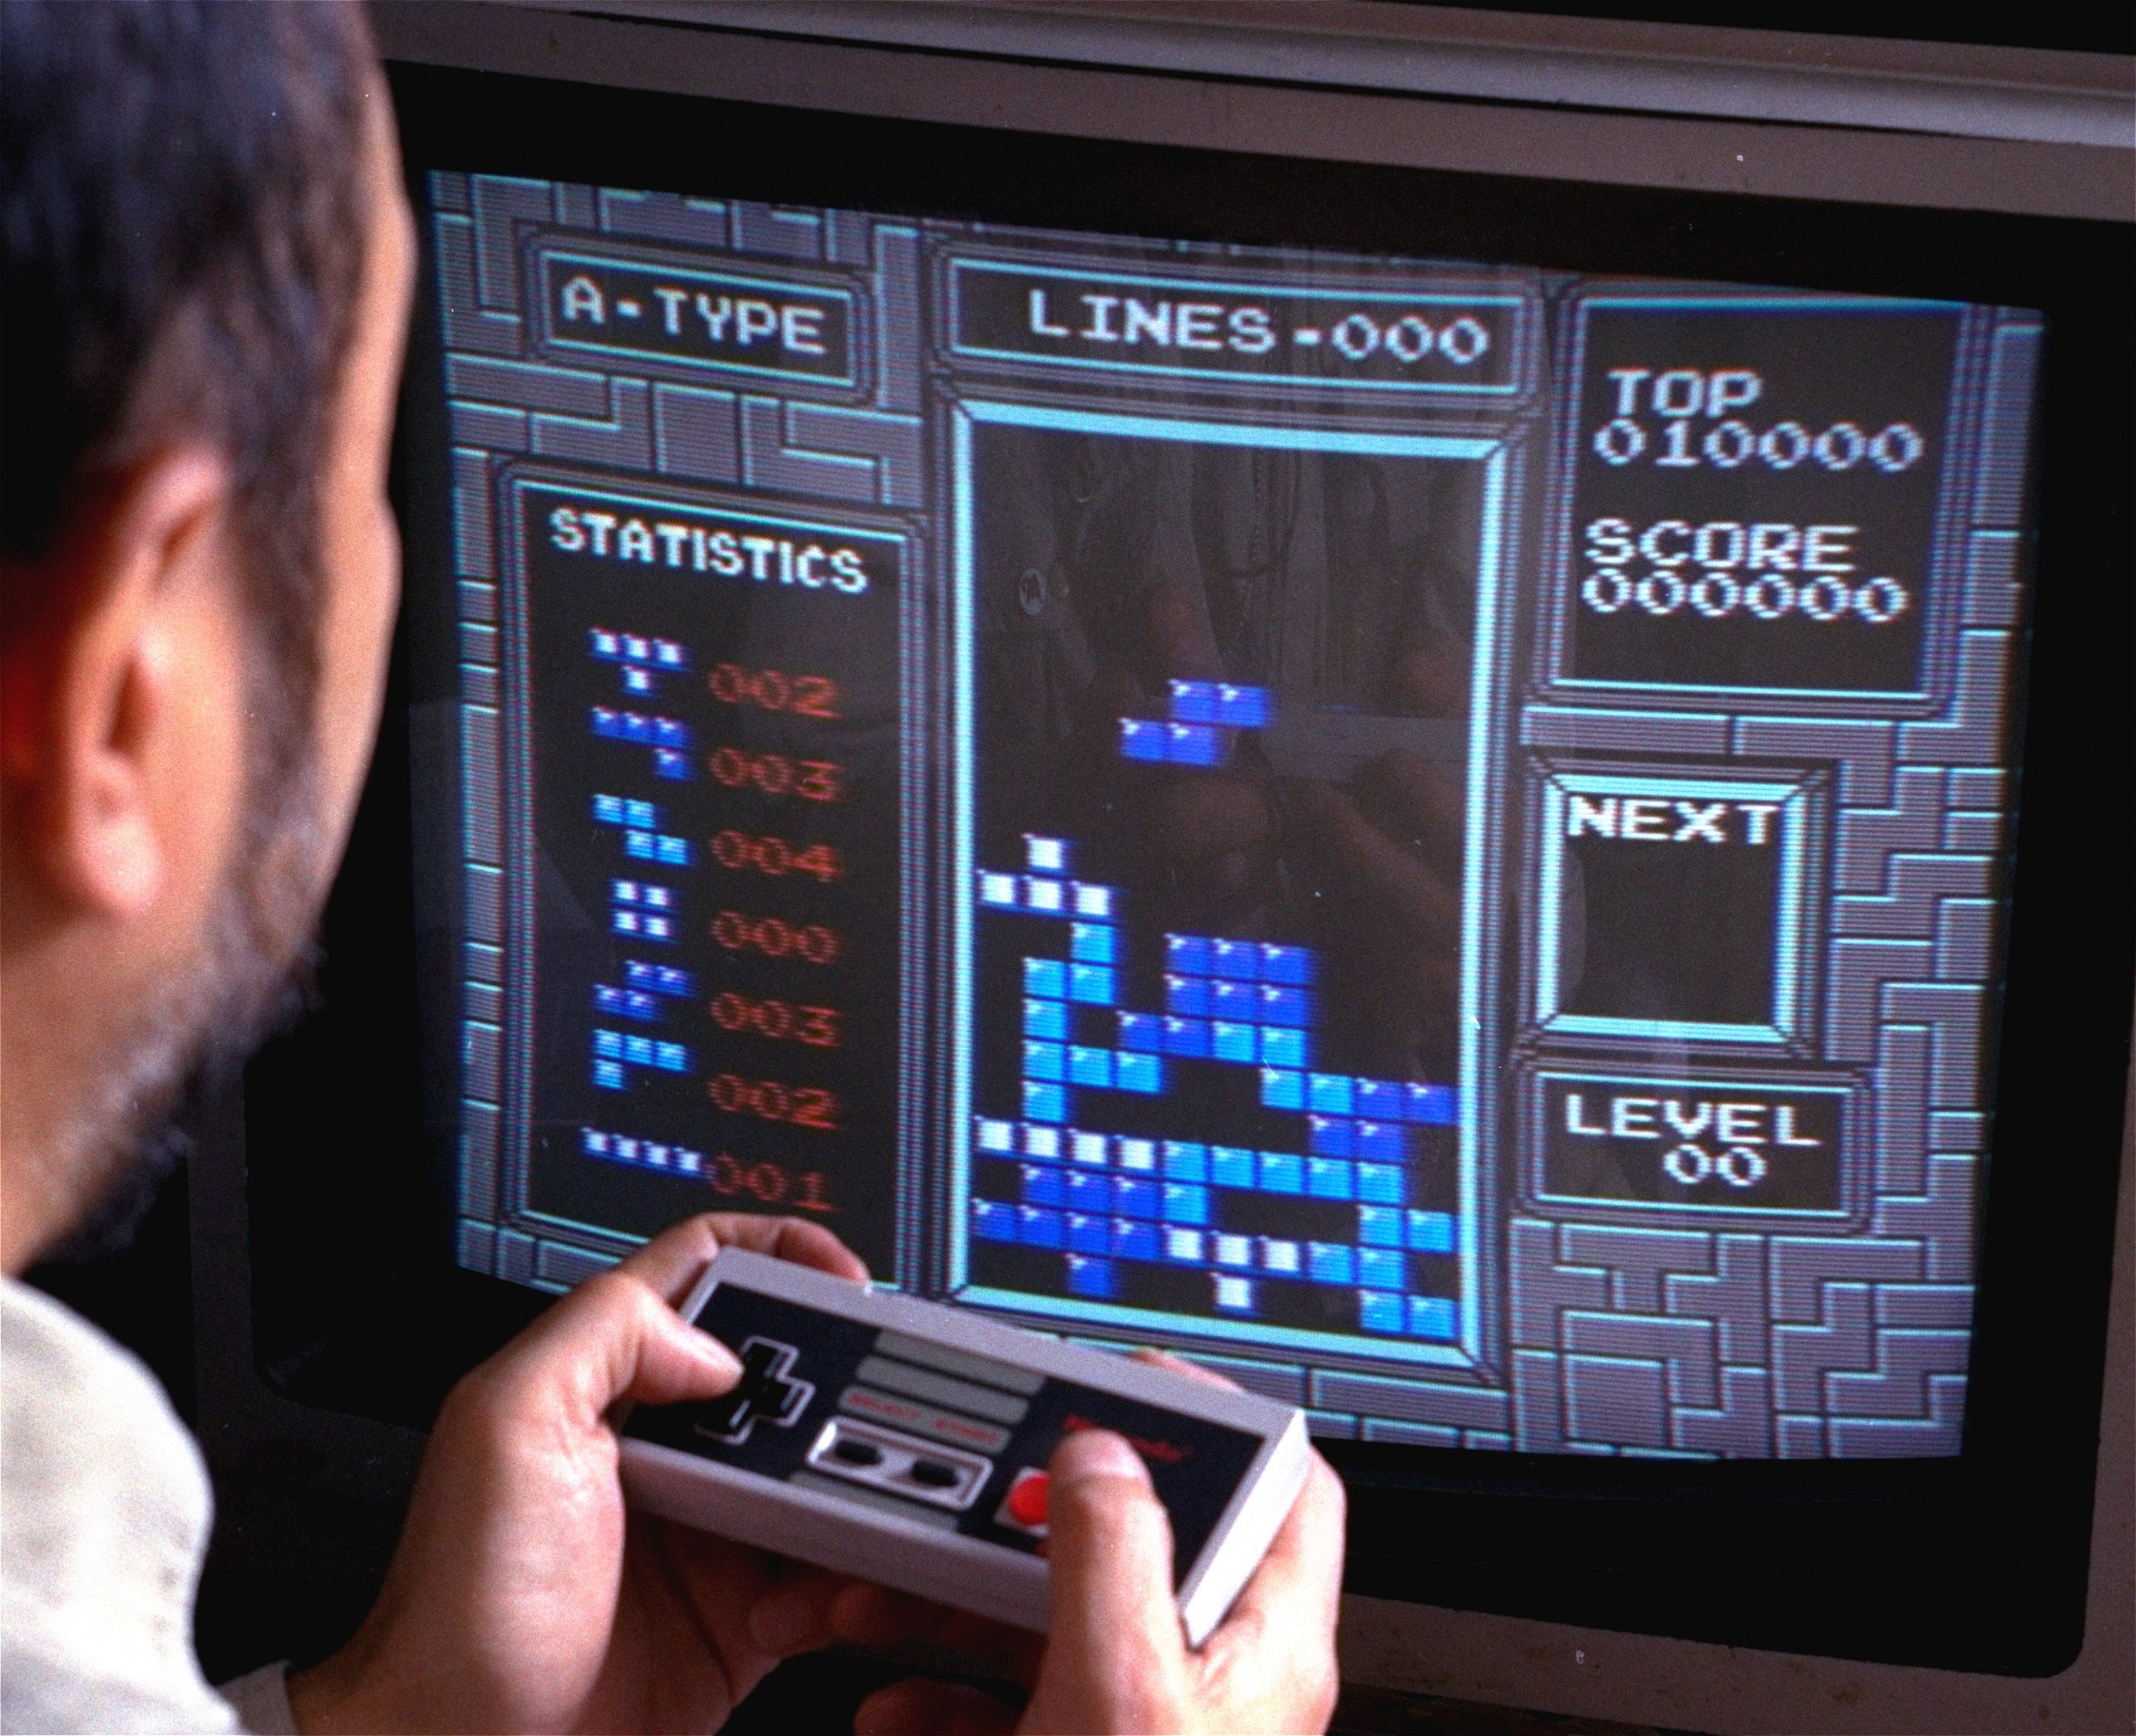 In this June 1990 file photo, Tetris, an addictive brain-teasing video game, is shown as played on the Nintendo Entertainment System in New York. (AP Photo)